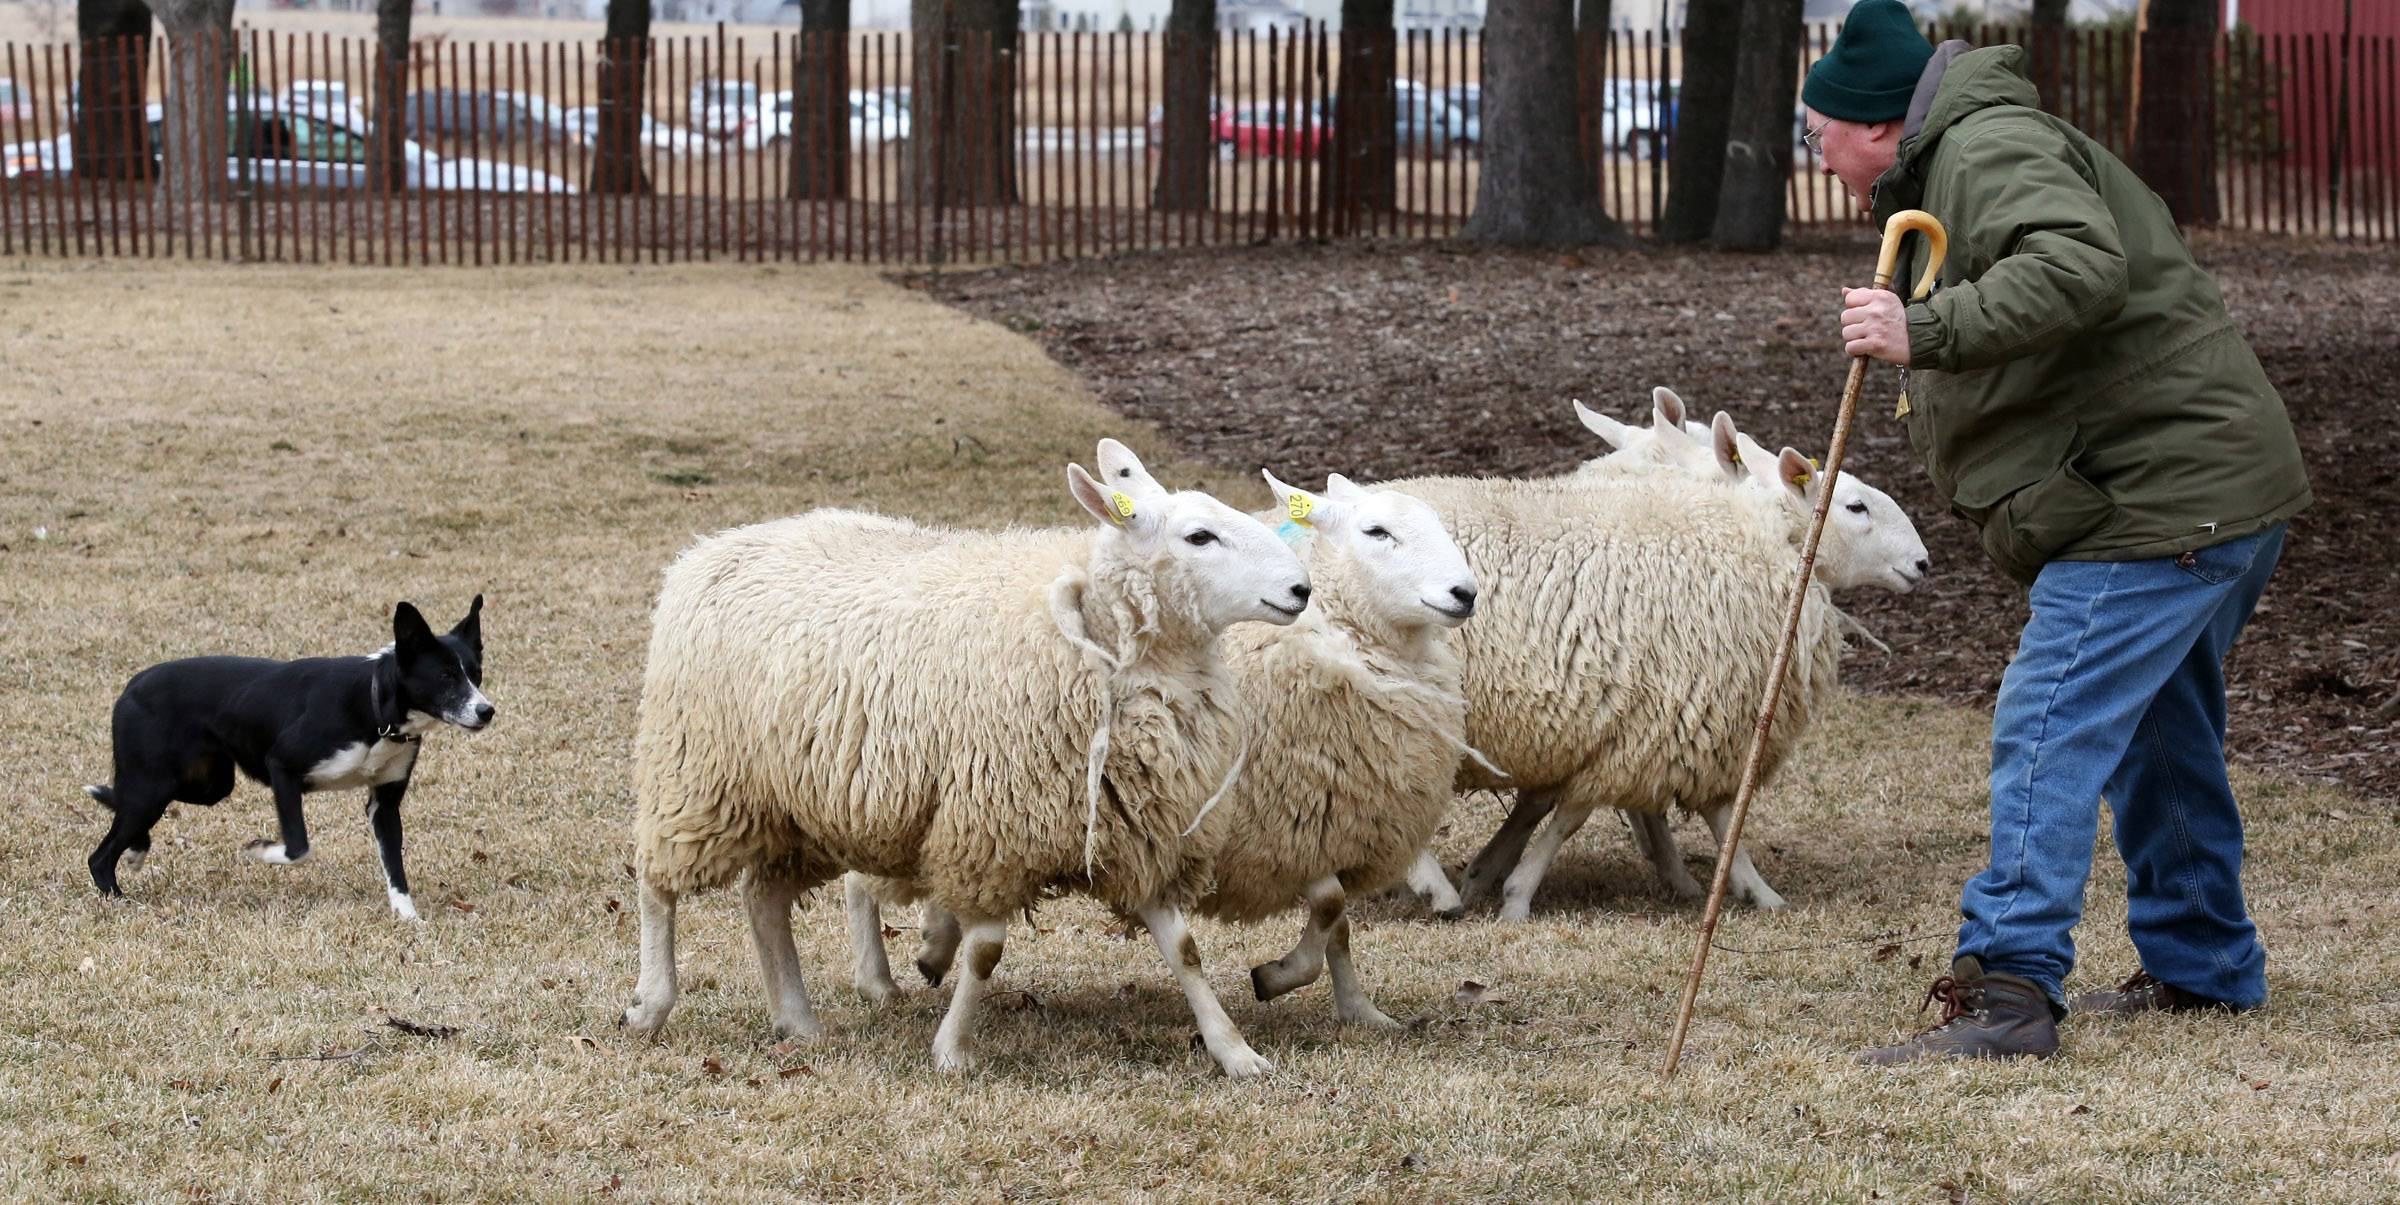 John Seraphine, of Sycamore, demonstrates how his five year-old border collie, Nell, herds north country cheviot sheep during Heritage Day at Peck Farm Park on Saturday in Geneva.